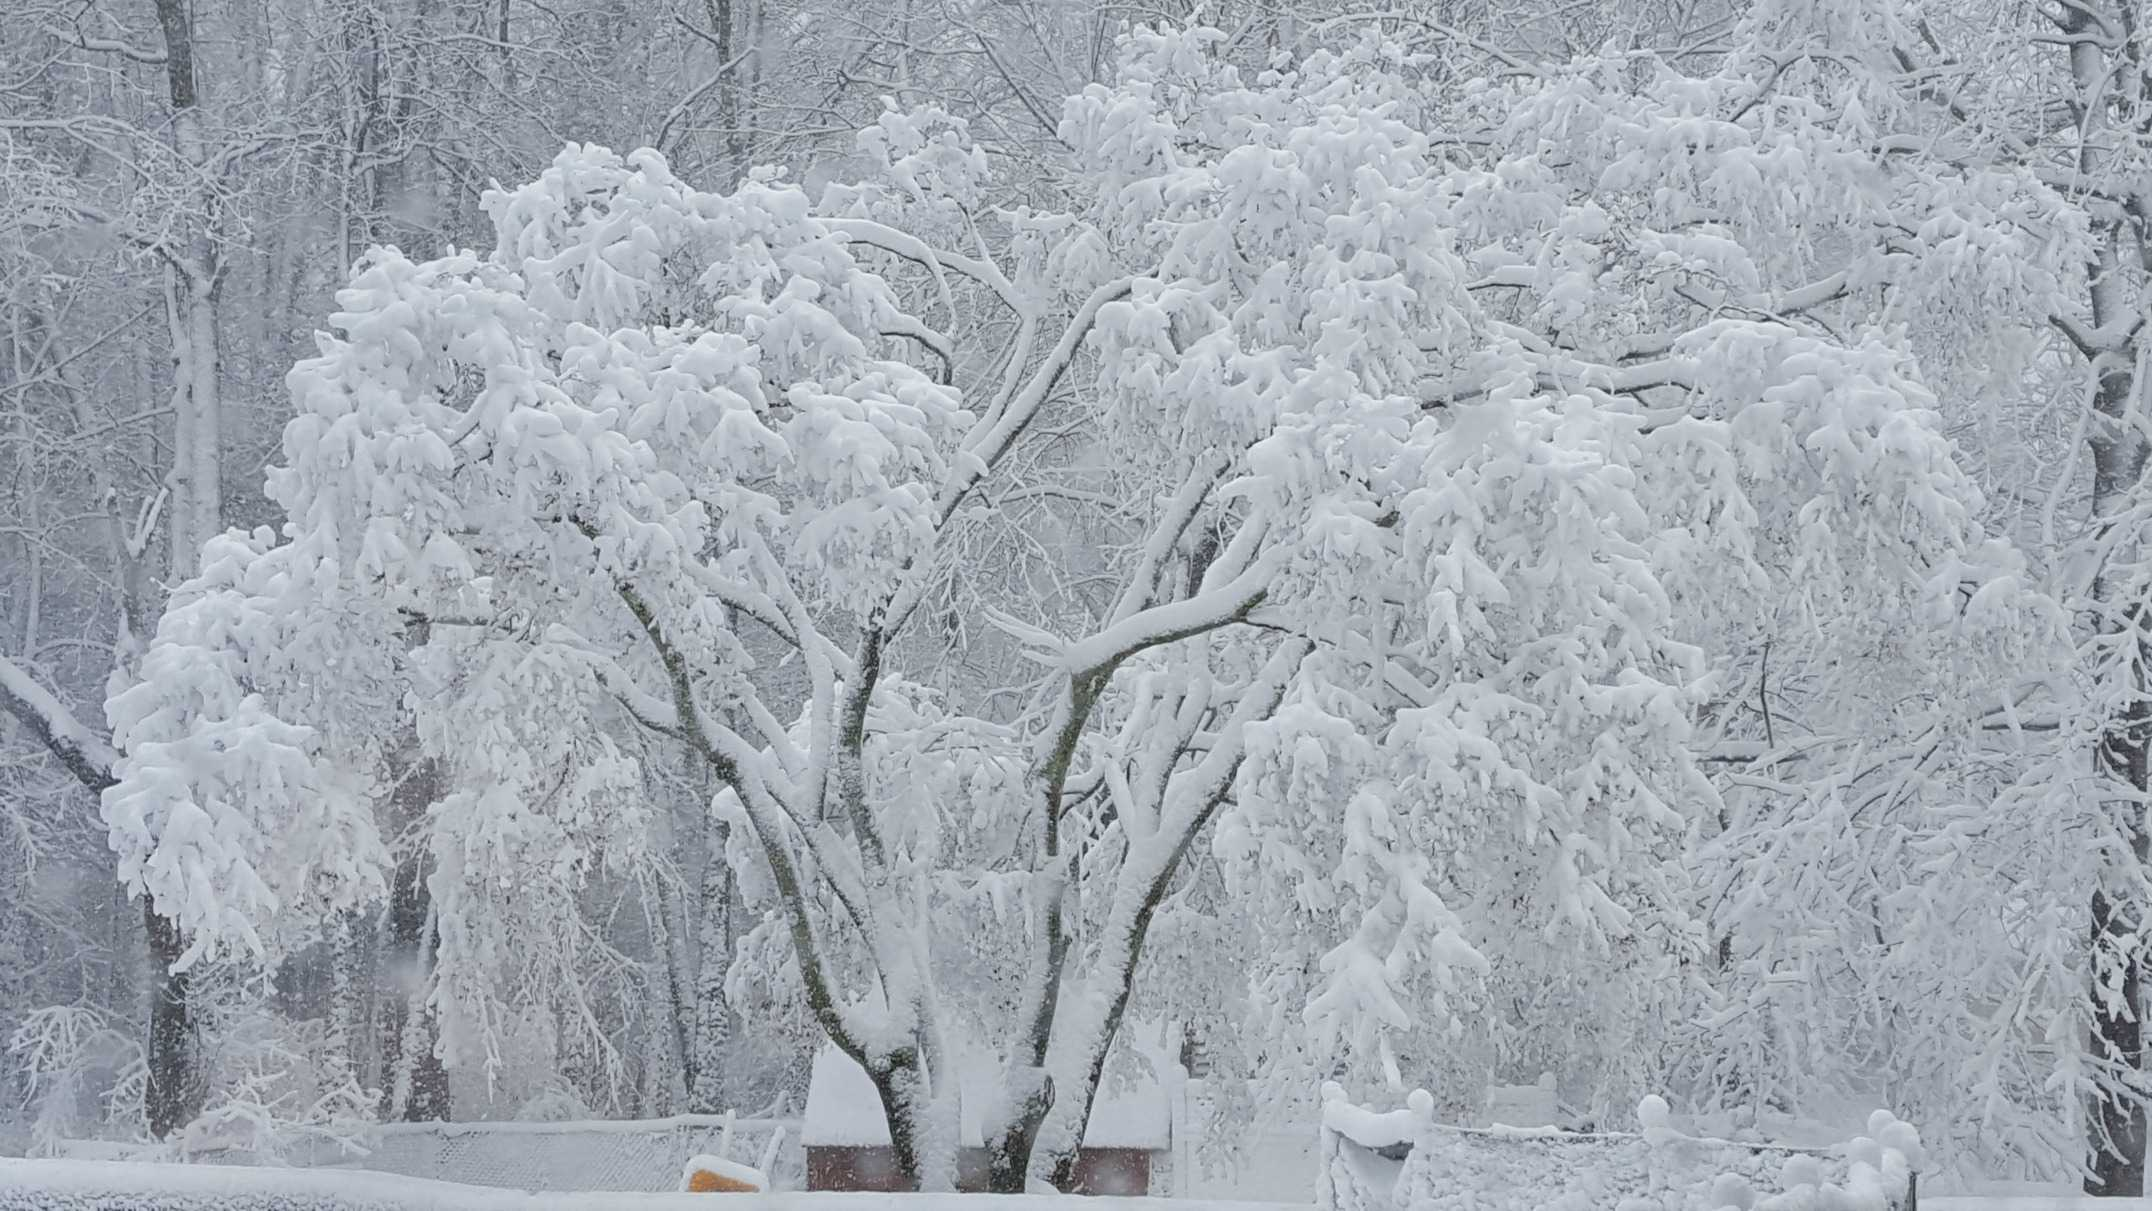 Mya took this photograph of the Chinese Maple tree in her backyard after a snowstorm. She used a smartphone.